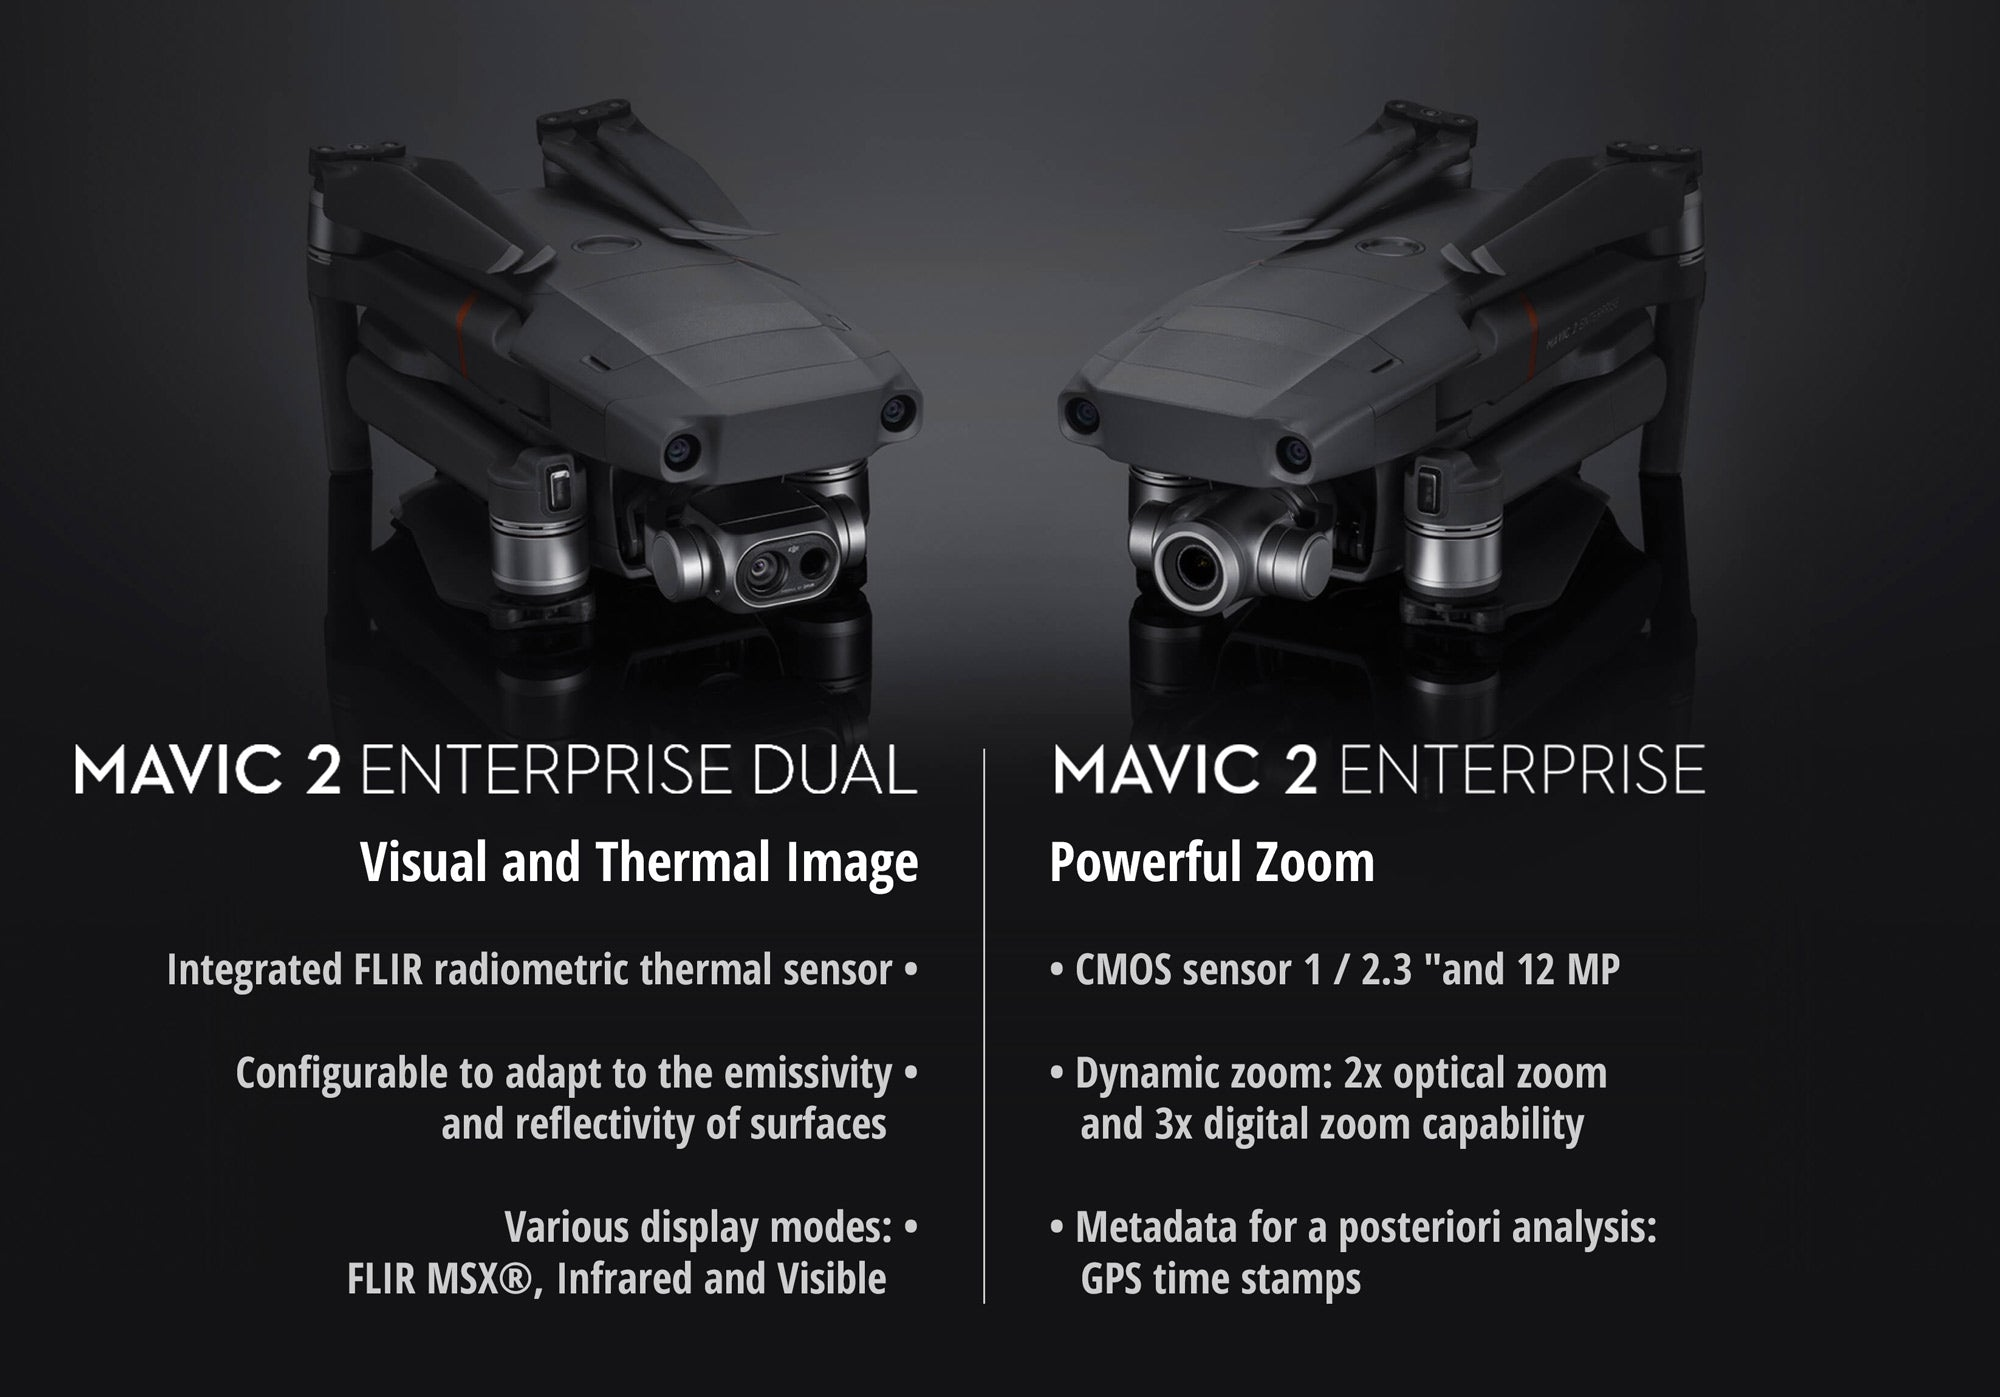 DJI Mavic 2 Enterprise Dual vs DJI Mavic 2 Enterprise Zoom